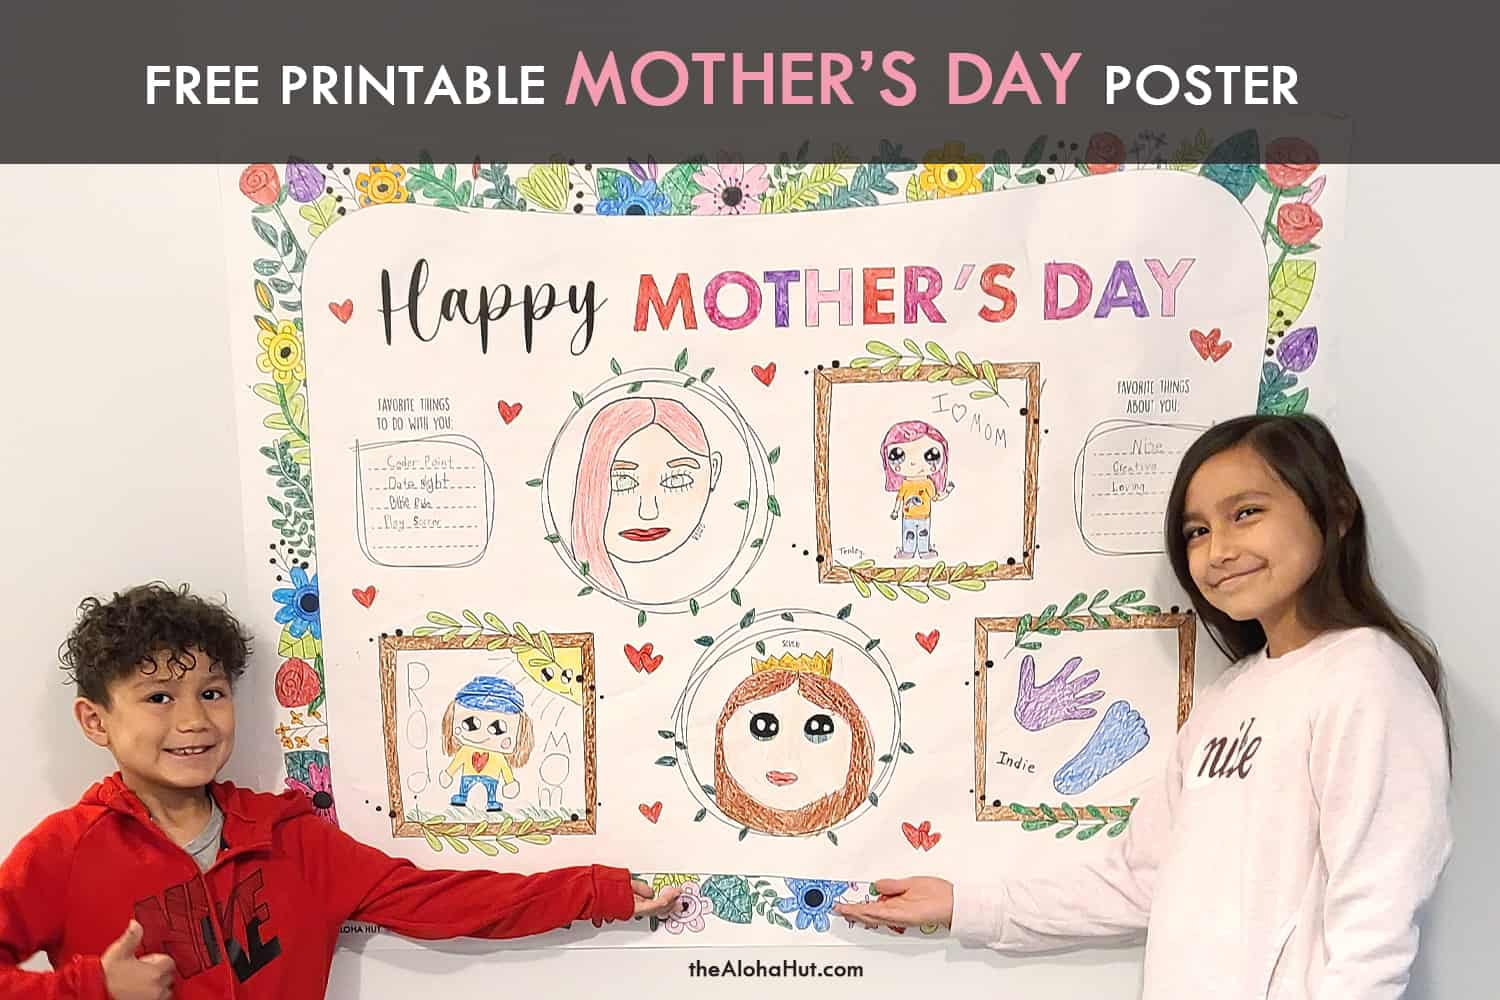 mother's day poster free printable by the Aloha Hut